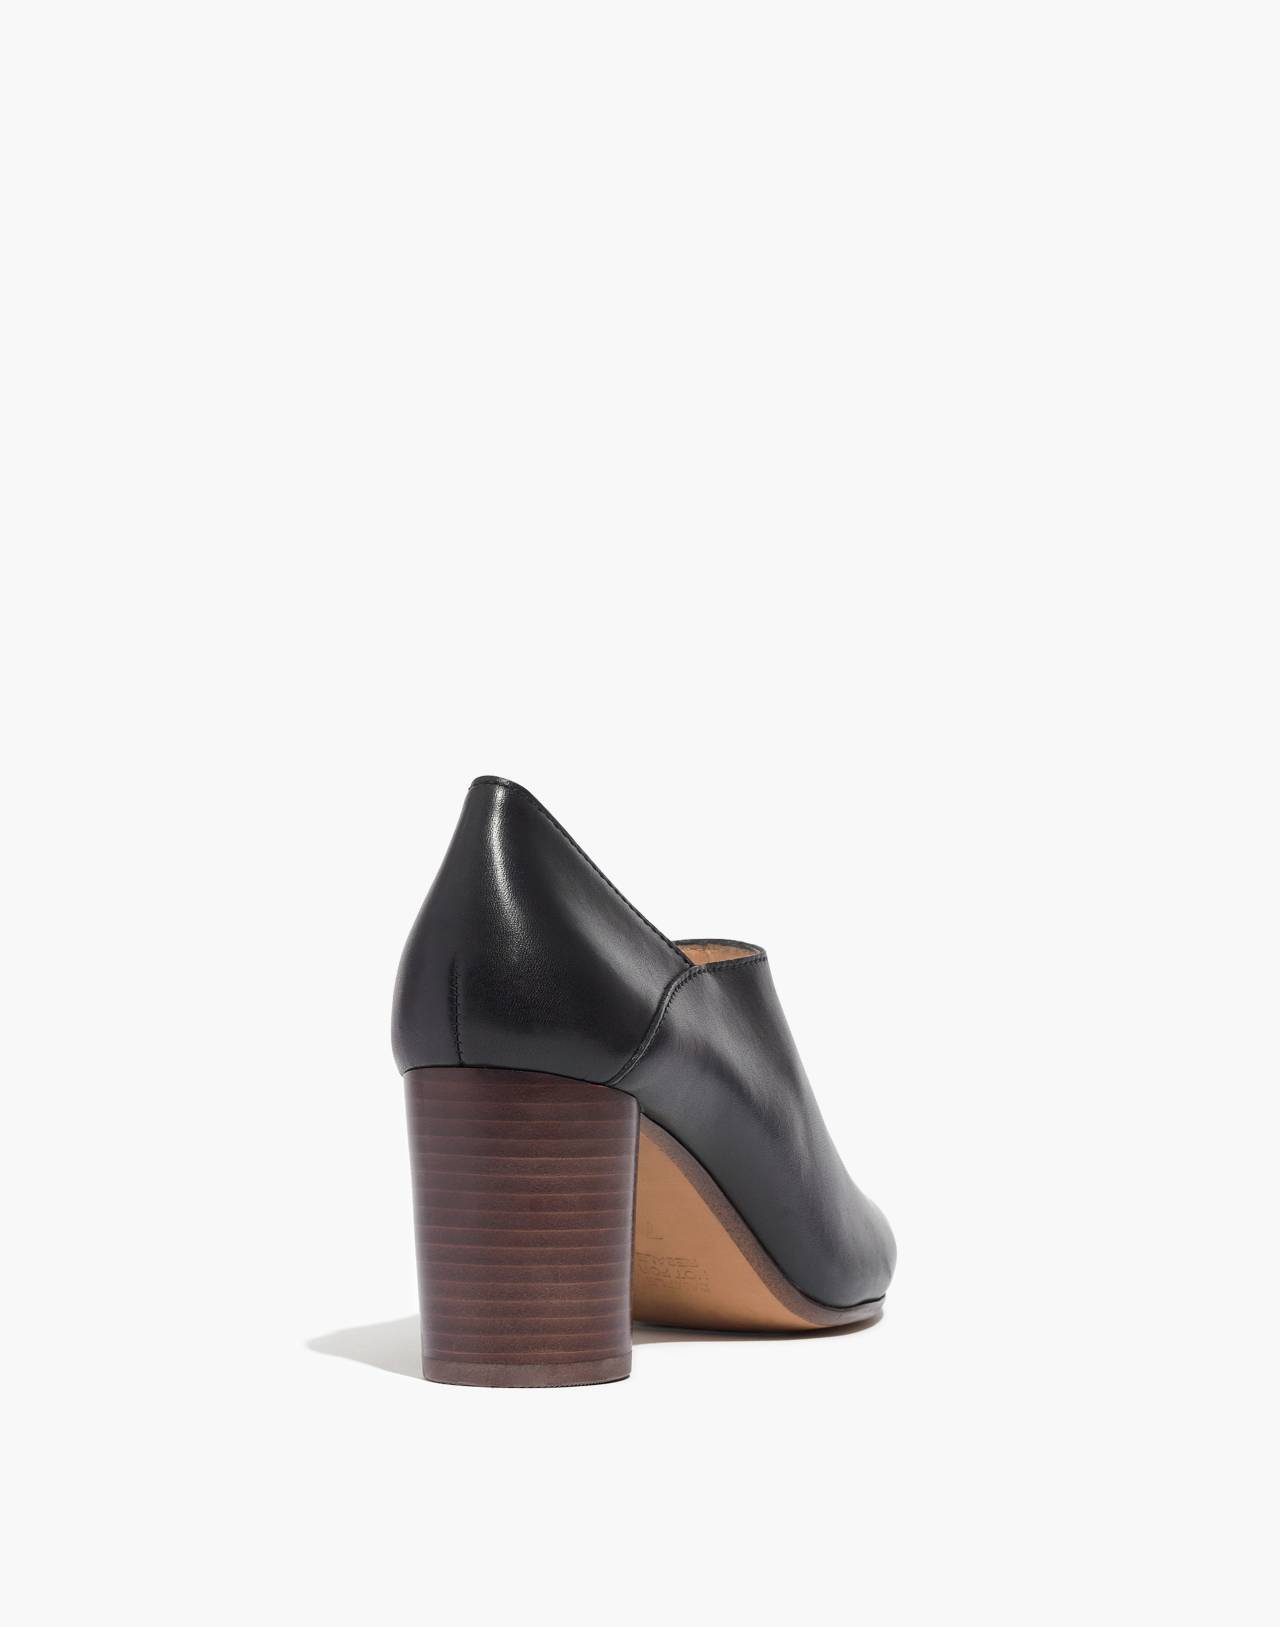 The Rory Lowcut Bootie in true black image 4